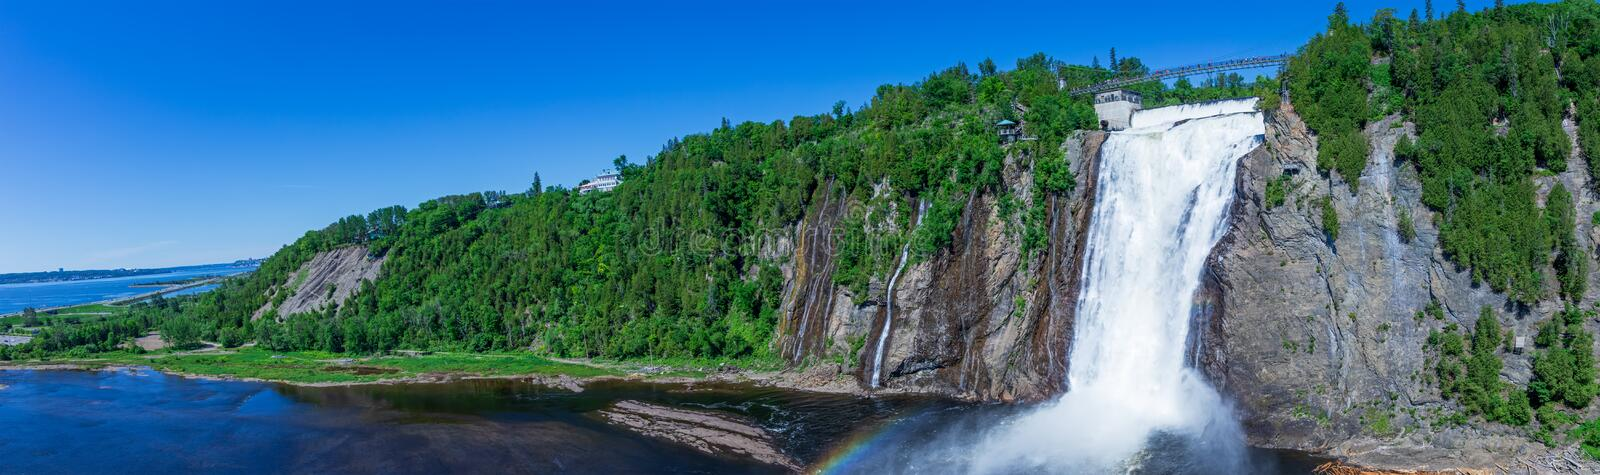 Beautiful Montmorency Falls with rainbow and blue sky. View of Canadian fall located near Quebec City, Canada in North America stock photography